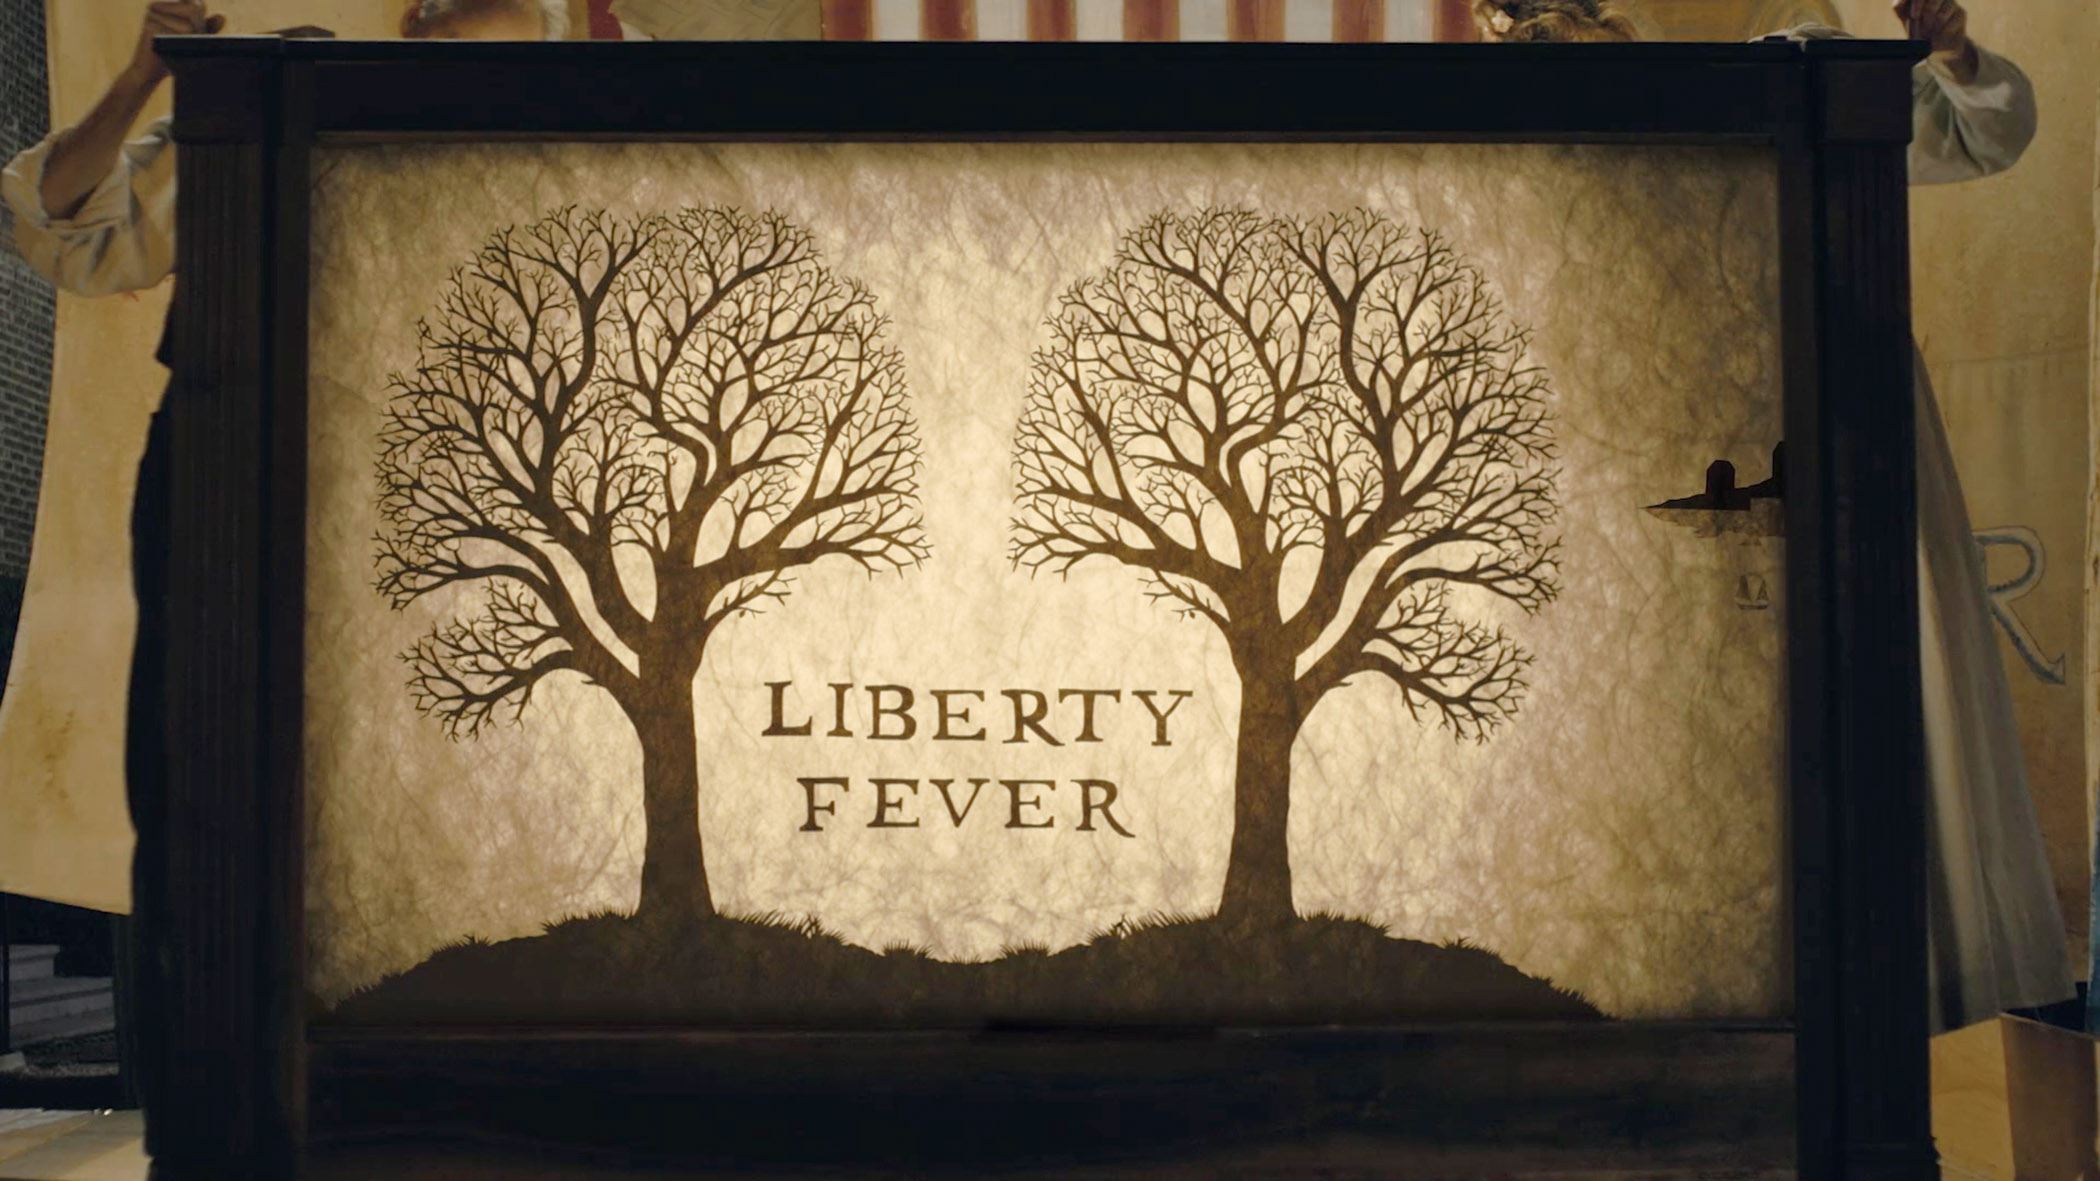 Liberty Fever introductory screen